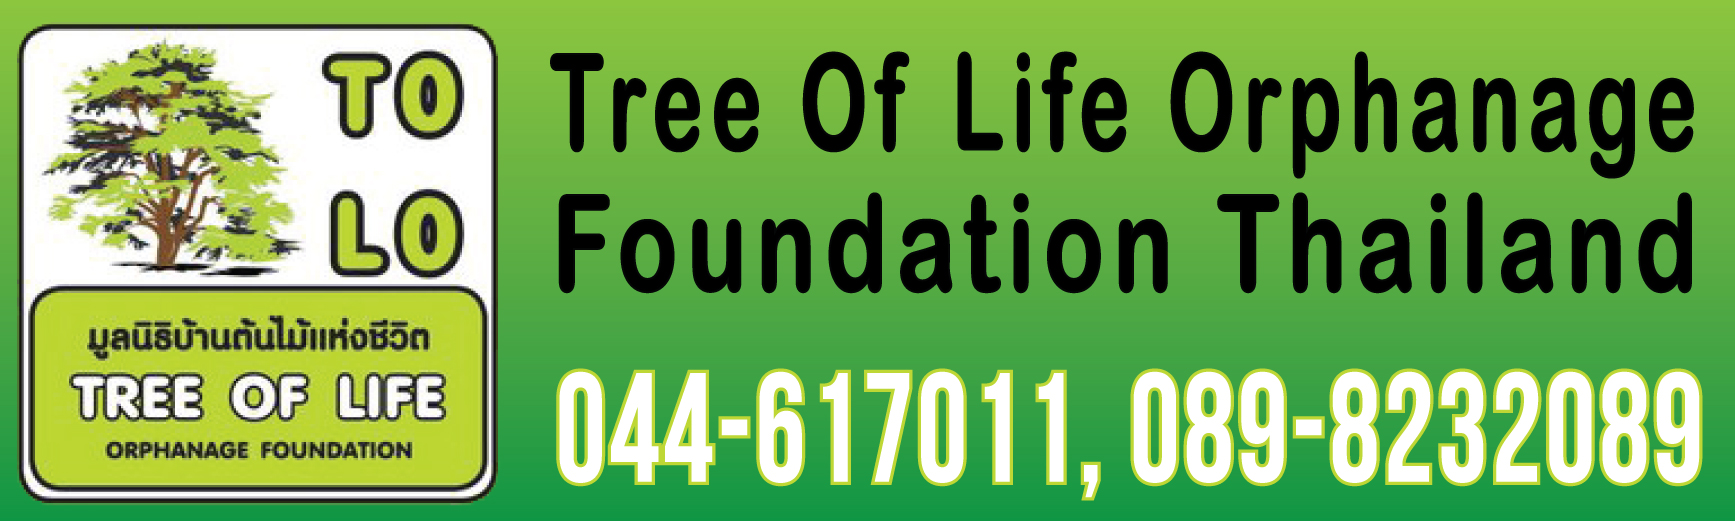 Tree Of Life Orphanage